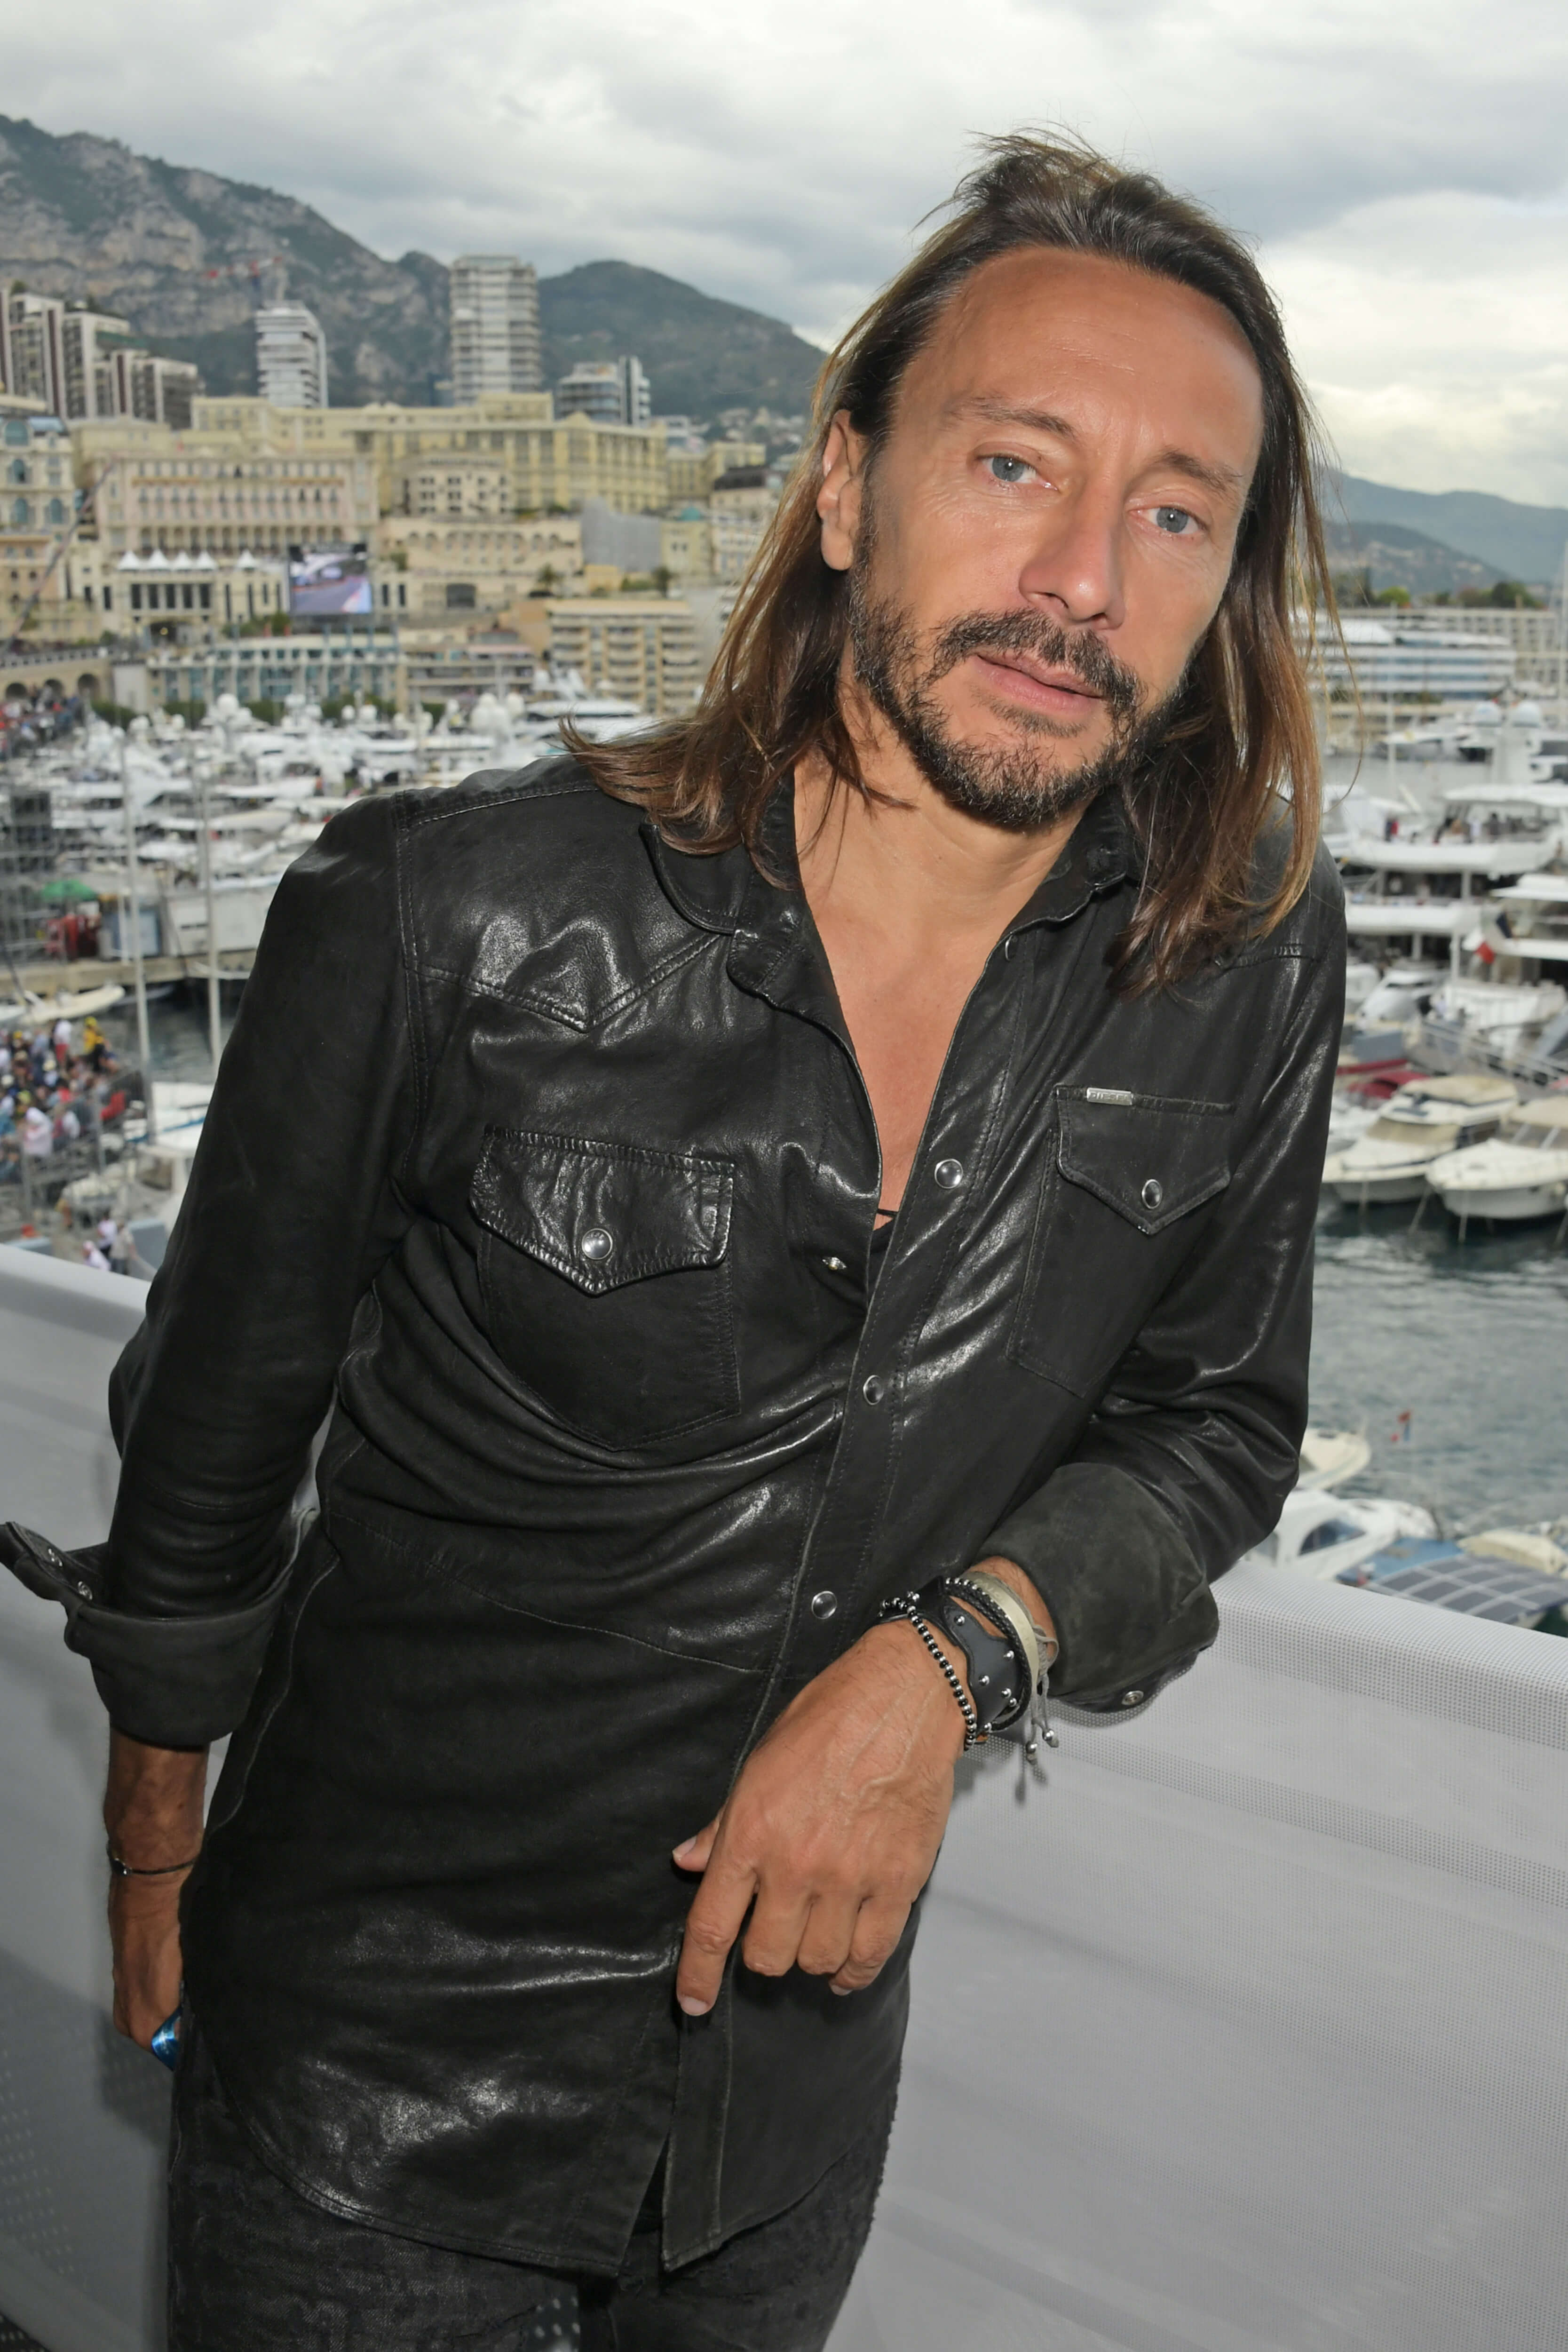 MONACO - MAY 26: DJ Bob Sinclar celebrates 50 Years of the Monaco Watch at the Formula 1 Grand Prix De Monaco, the legendary event that gave the watch its name in 1969, on May 26, 2019 in Monaco. (Photo by David M. Benett/Dave Benett/Getty Images for TAG Heuer)